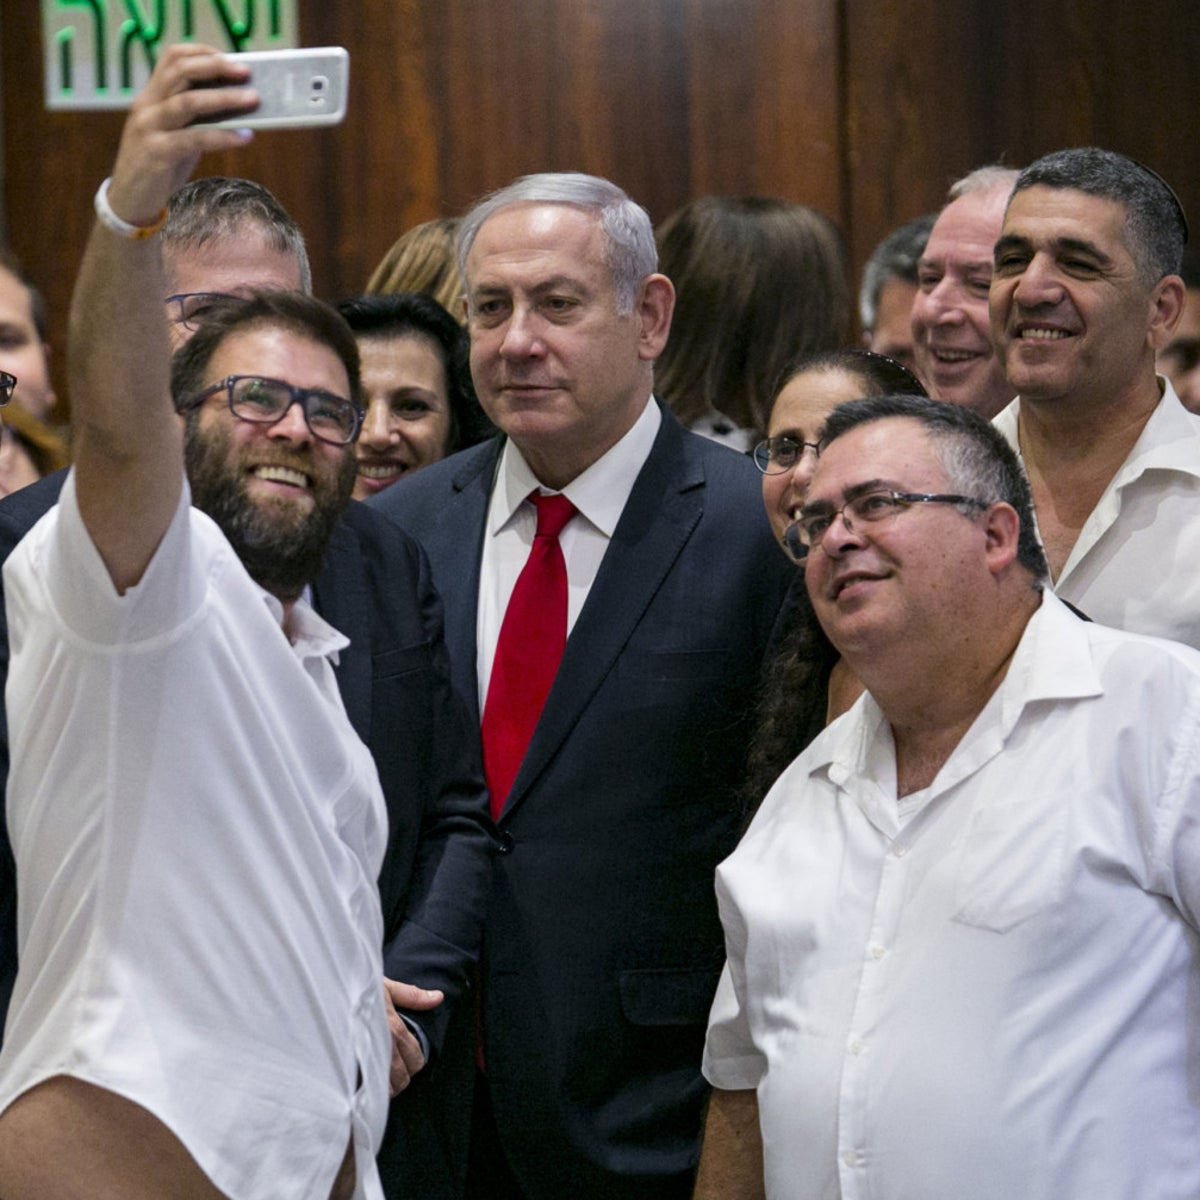 Likud MK Oren Hazan taking a selfie with Prime Minister Benjamin Netanyahu and other coalition members after a nighttime vote on the nation-state law.